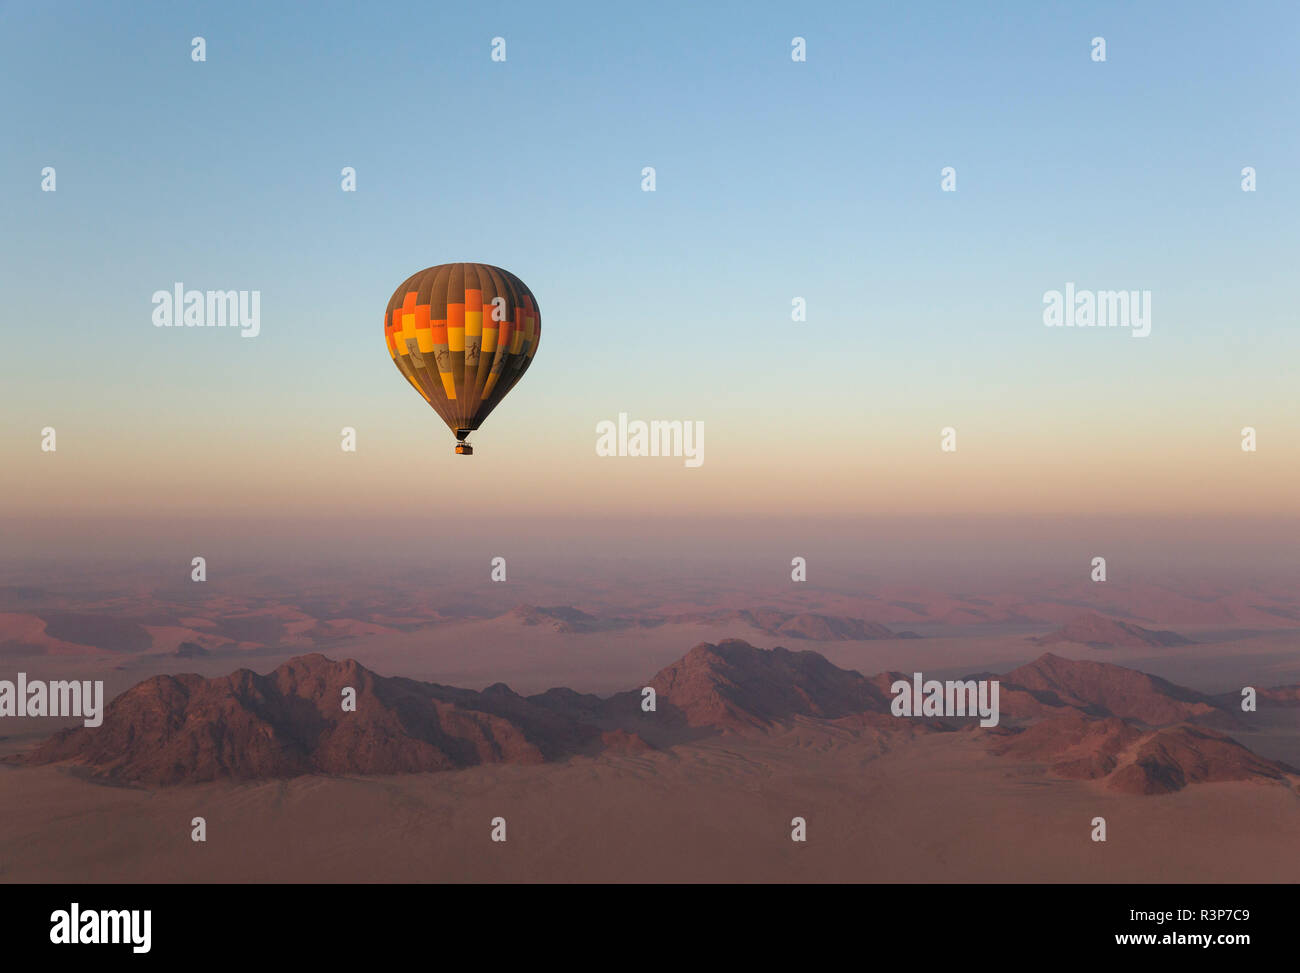 The hot-air balloon above an arid plain and isolated mountain ridges at the edge of the Namib Desert. Aerial view from a second balloon. NamibRand Nature Reserve, Namibia. Stock Photo